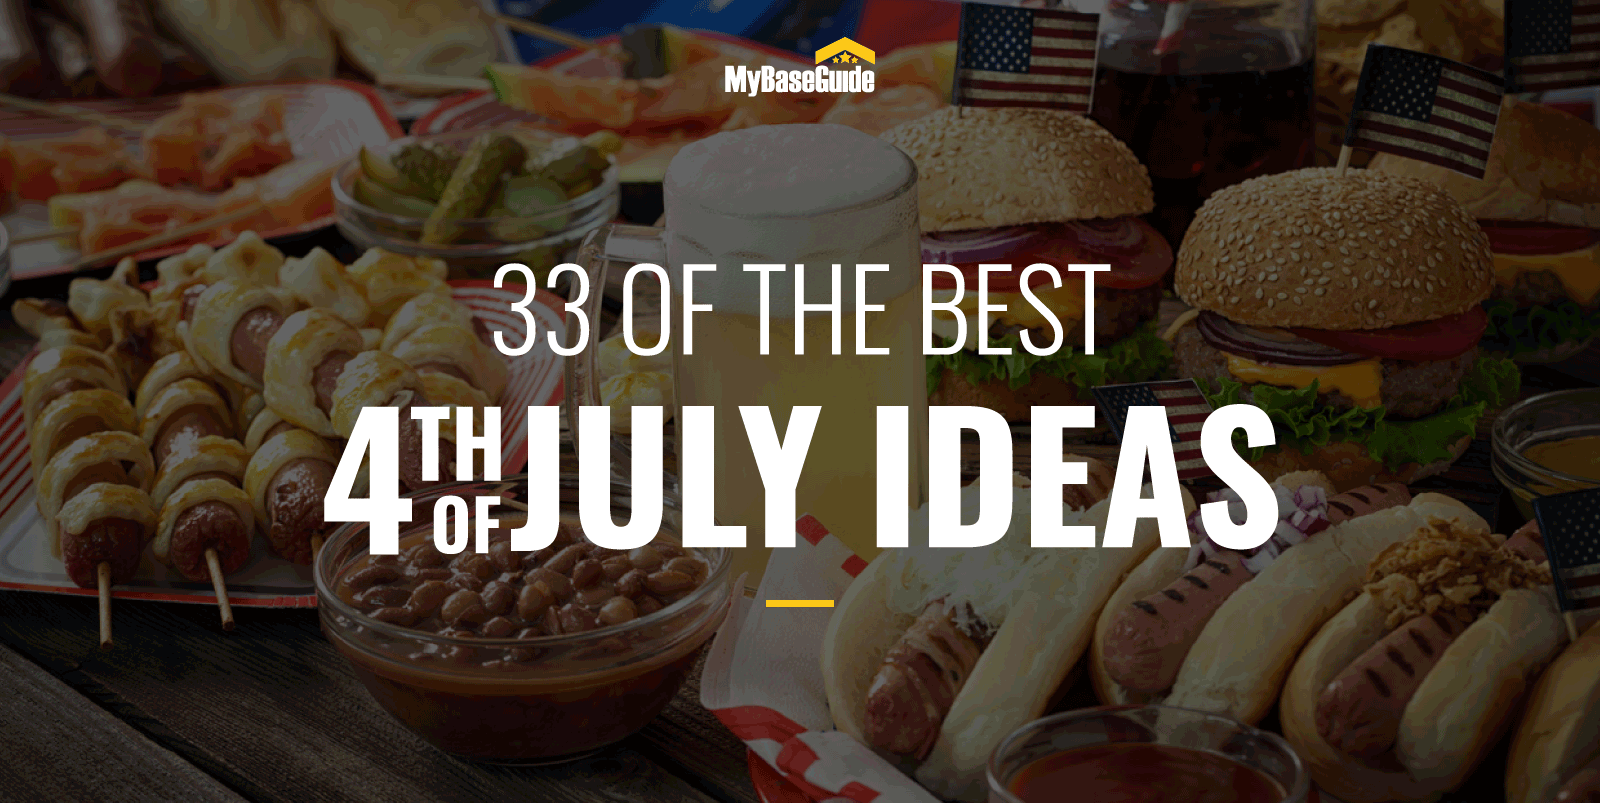 33 of the Best 4th of July Ideas for 2021 - Food, Cocktails, Decore, & More!